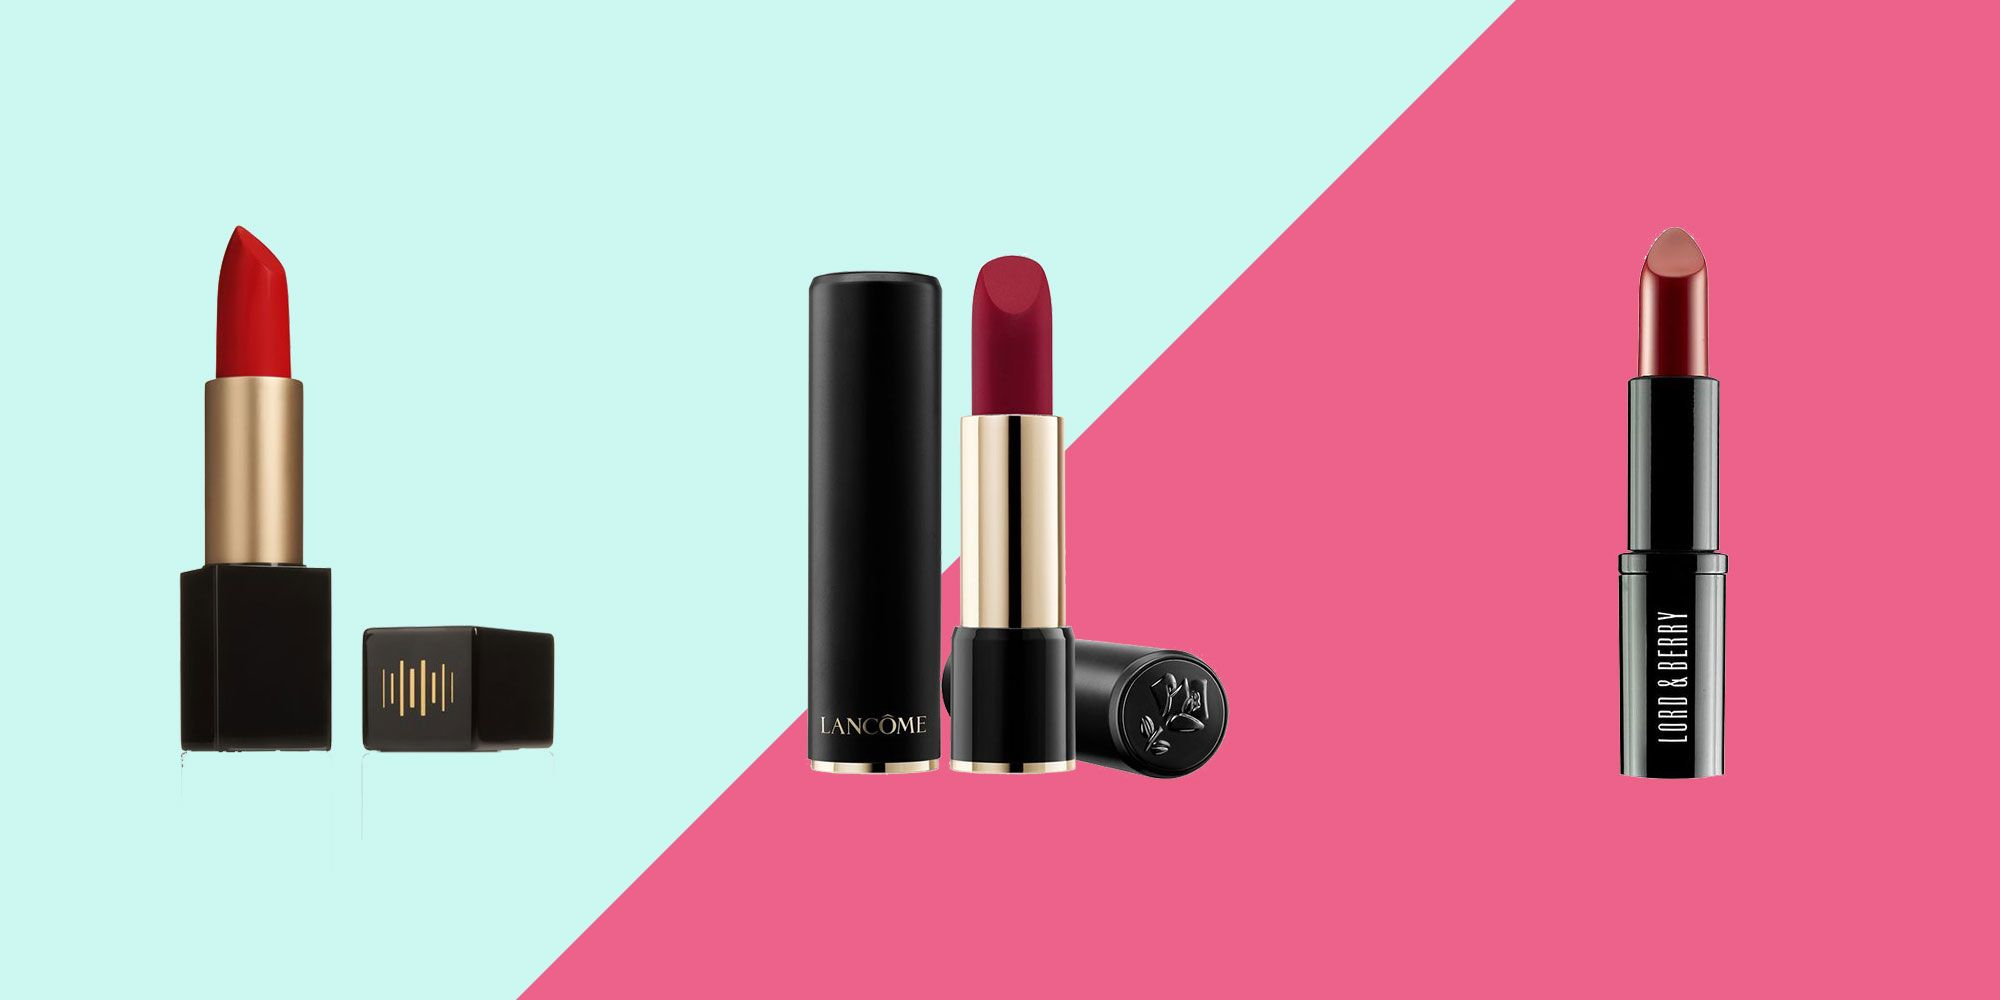 Revealed: the most universally flattering red lipsticks we tested